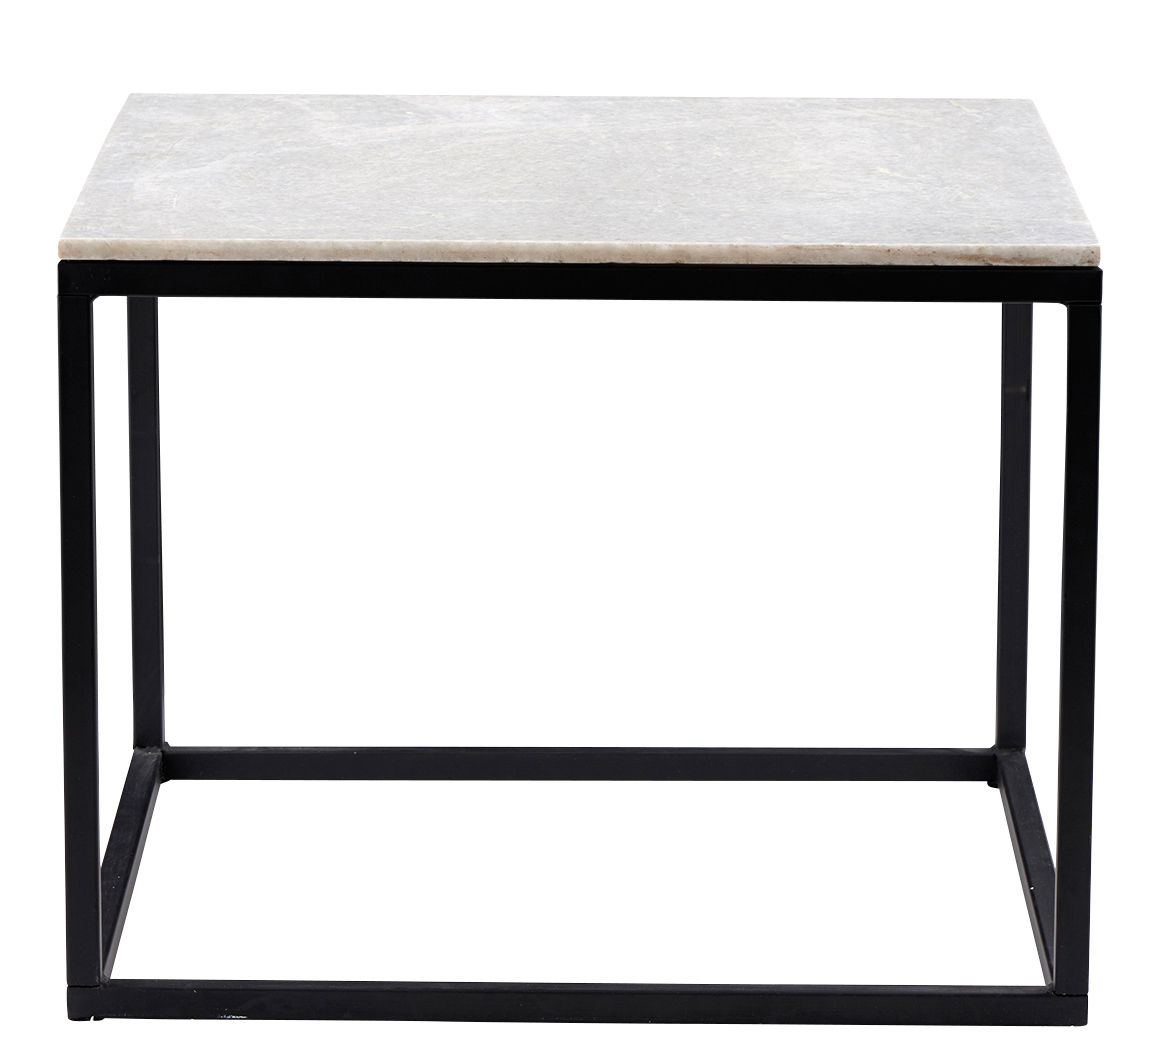 Coffee table marble top 60 x 60 cm marble top by for Table 160 cm avec rallonge